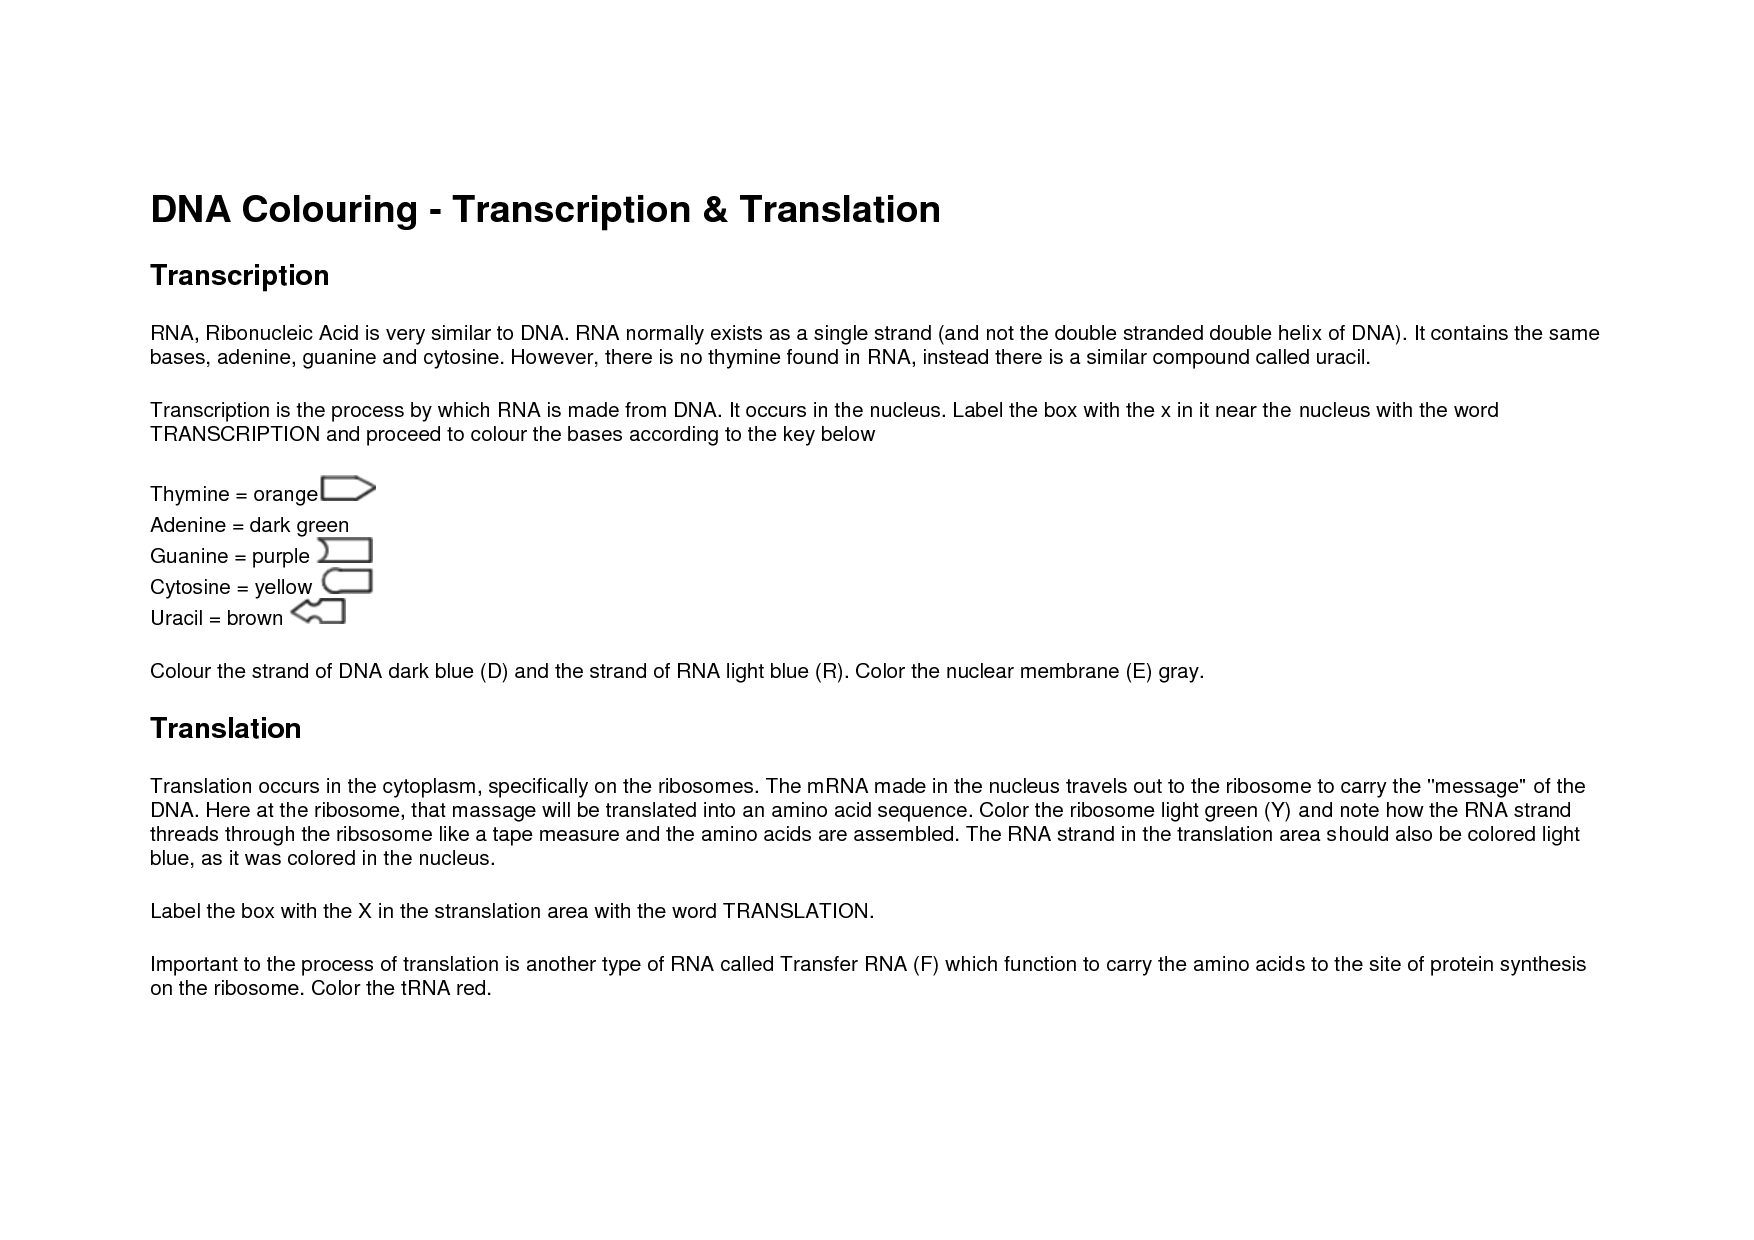 DNA Coloring Transcription and Translation Answer Key | Education ...